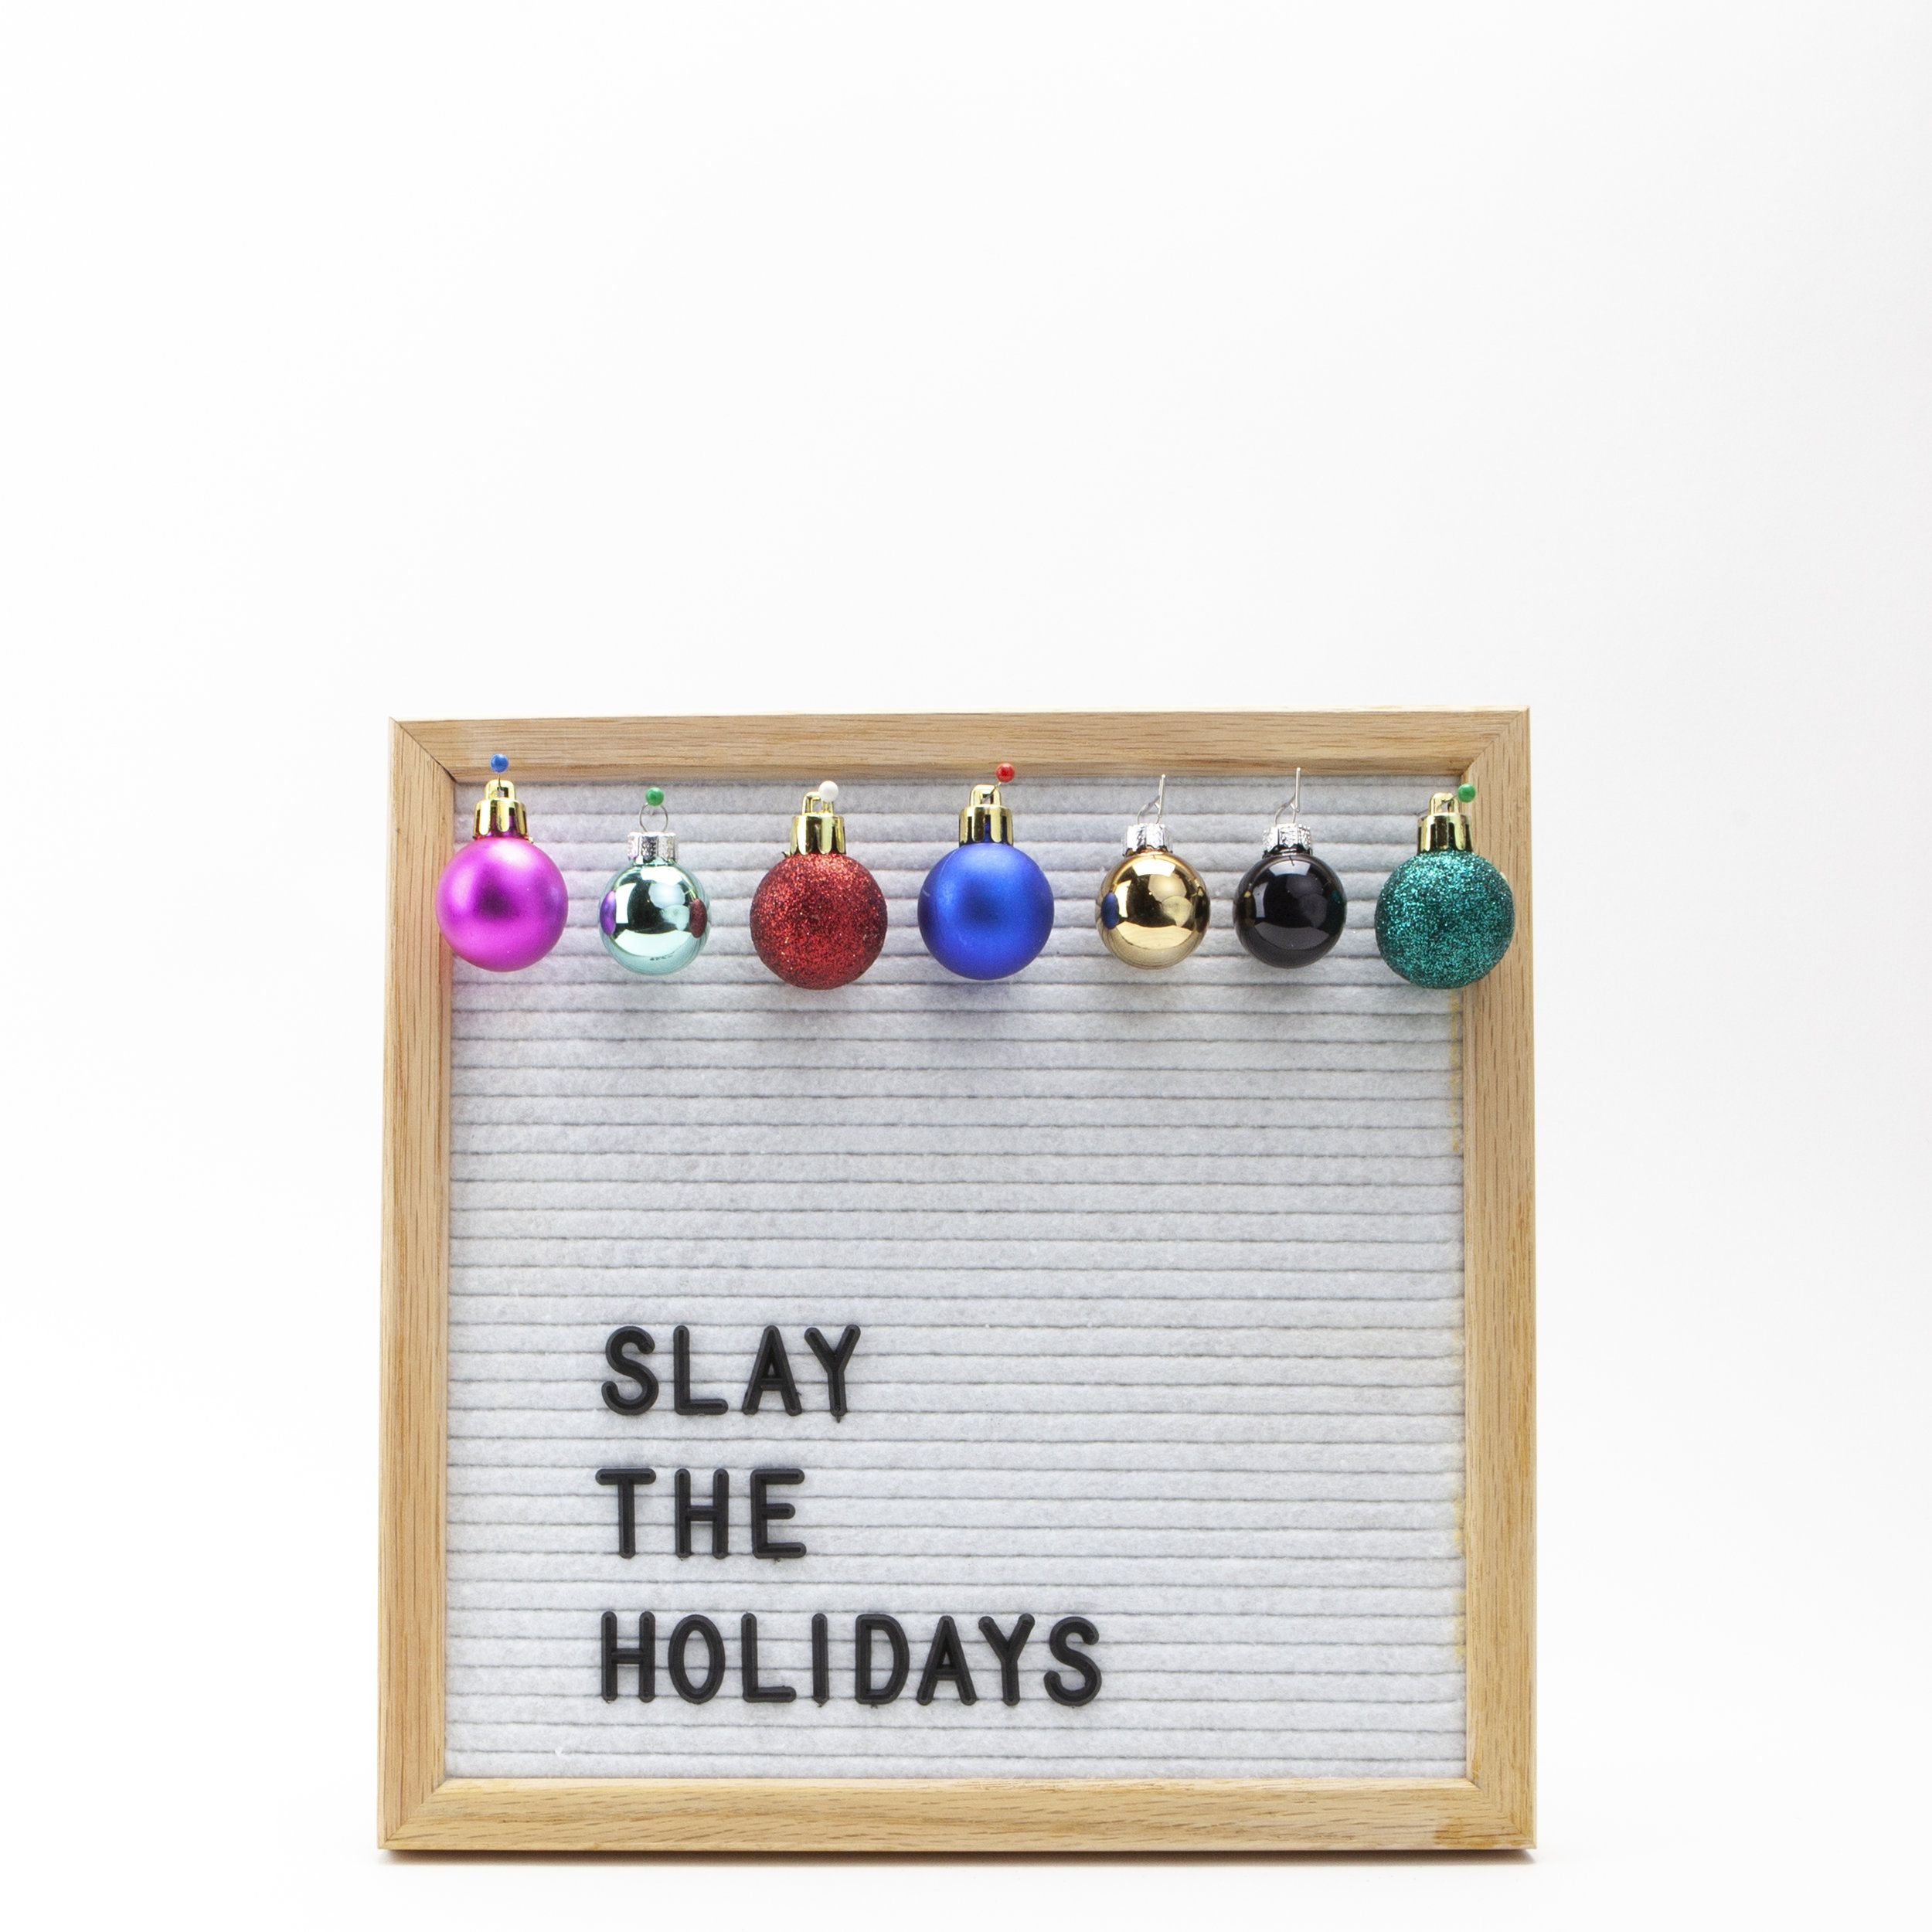 slay the holidays ornaments instagram post